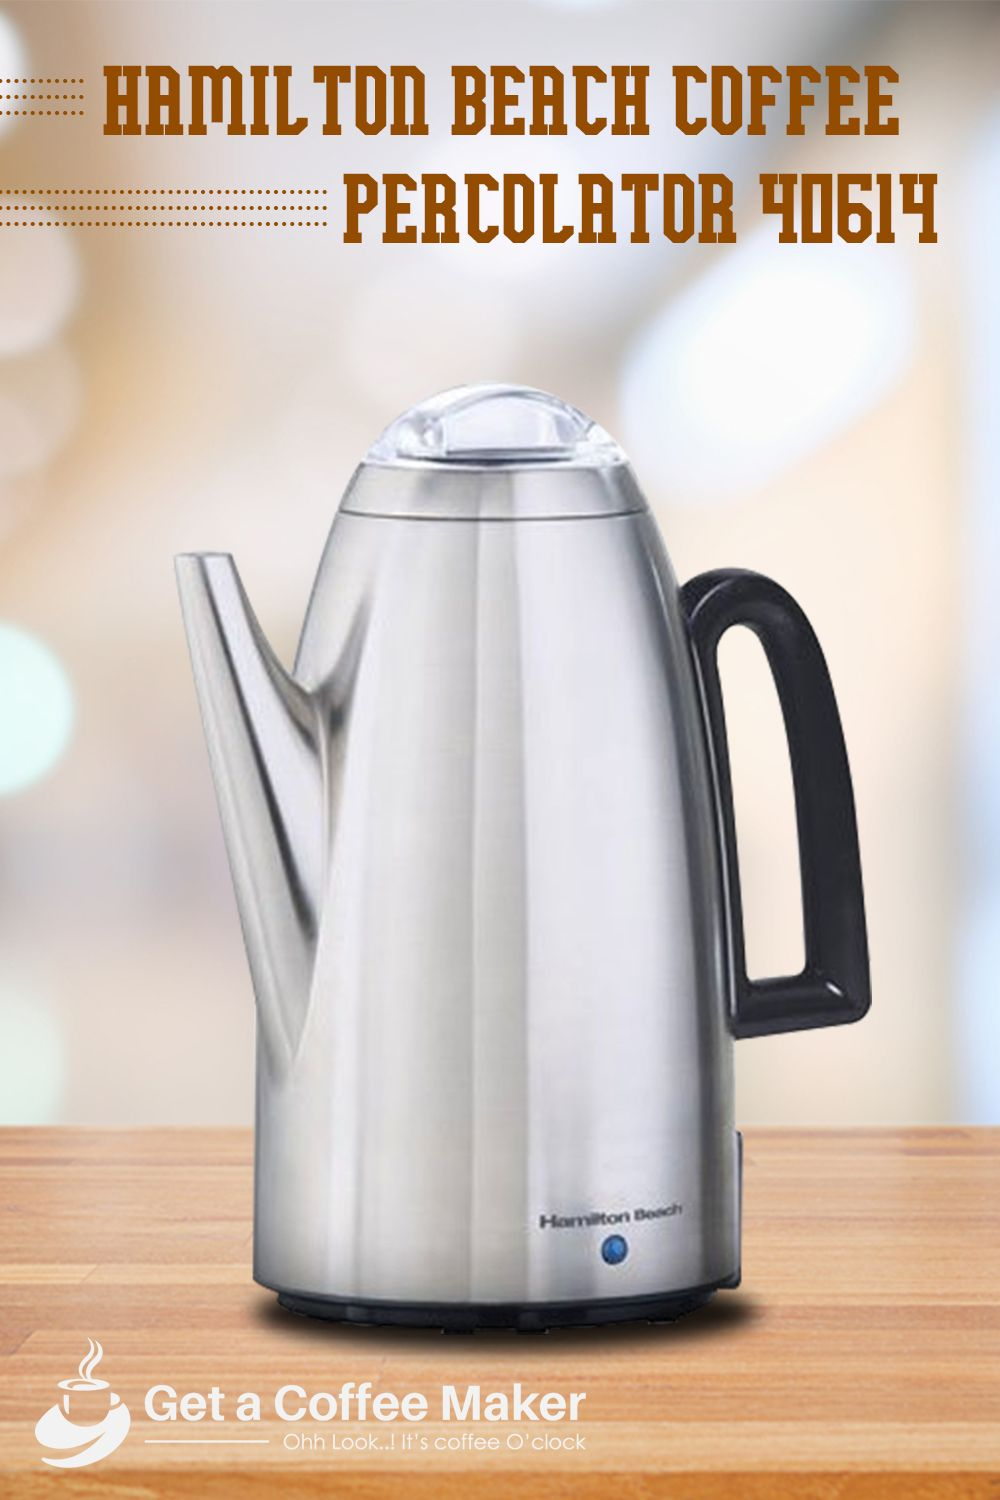 Top 10 Coffee Percolators Feb 2020 Reviews Buyers Guide